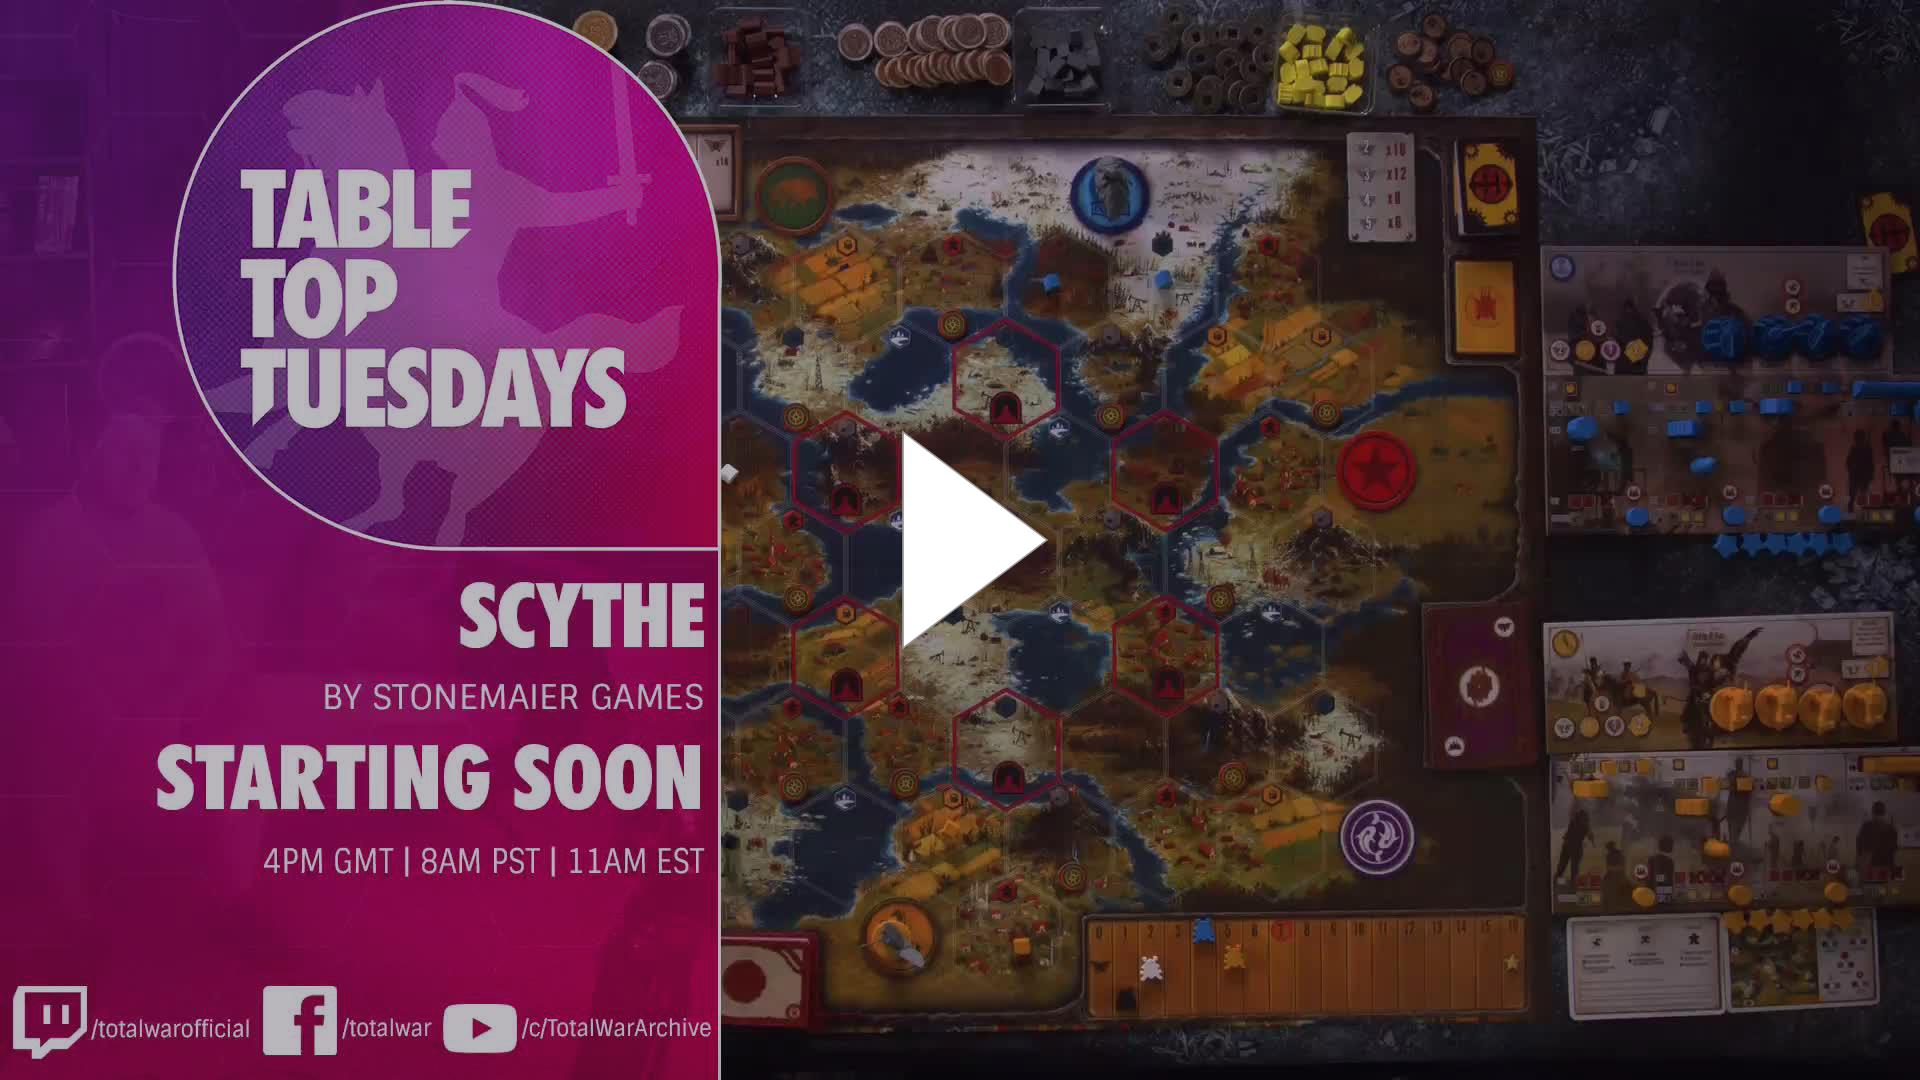 TotalWarOfficial - TableTop Tuesdays - Scythe by Stonemaier Games 13/11/18 - Twitch